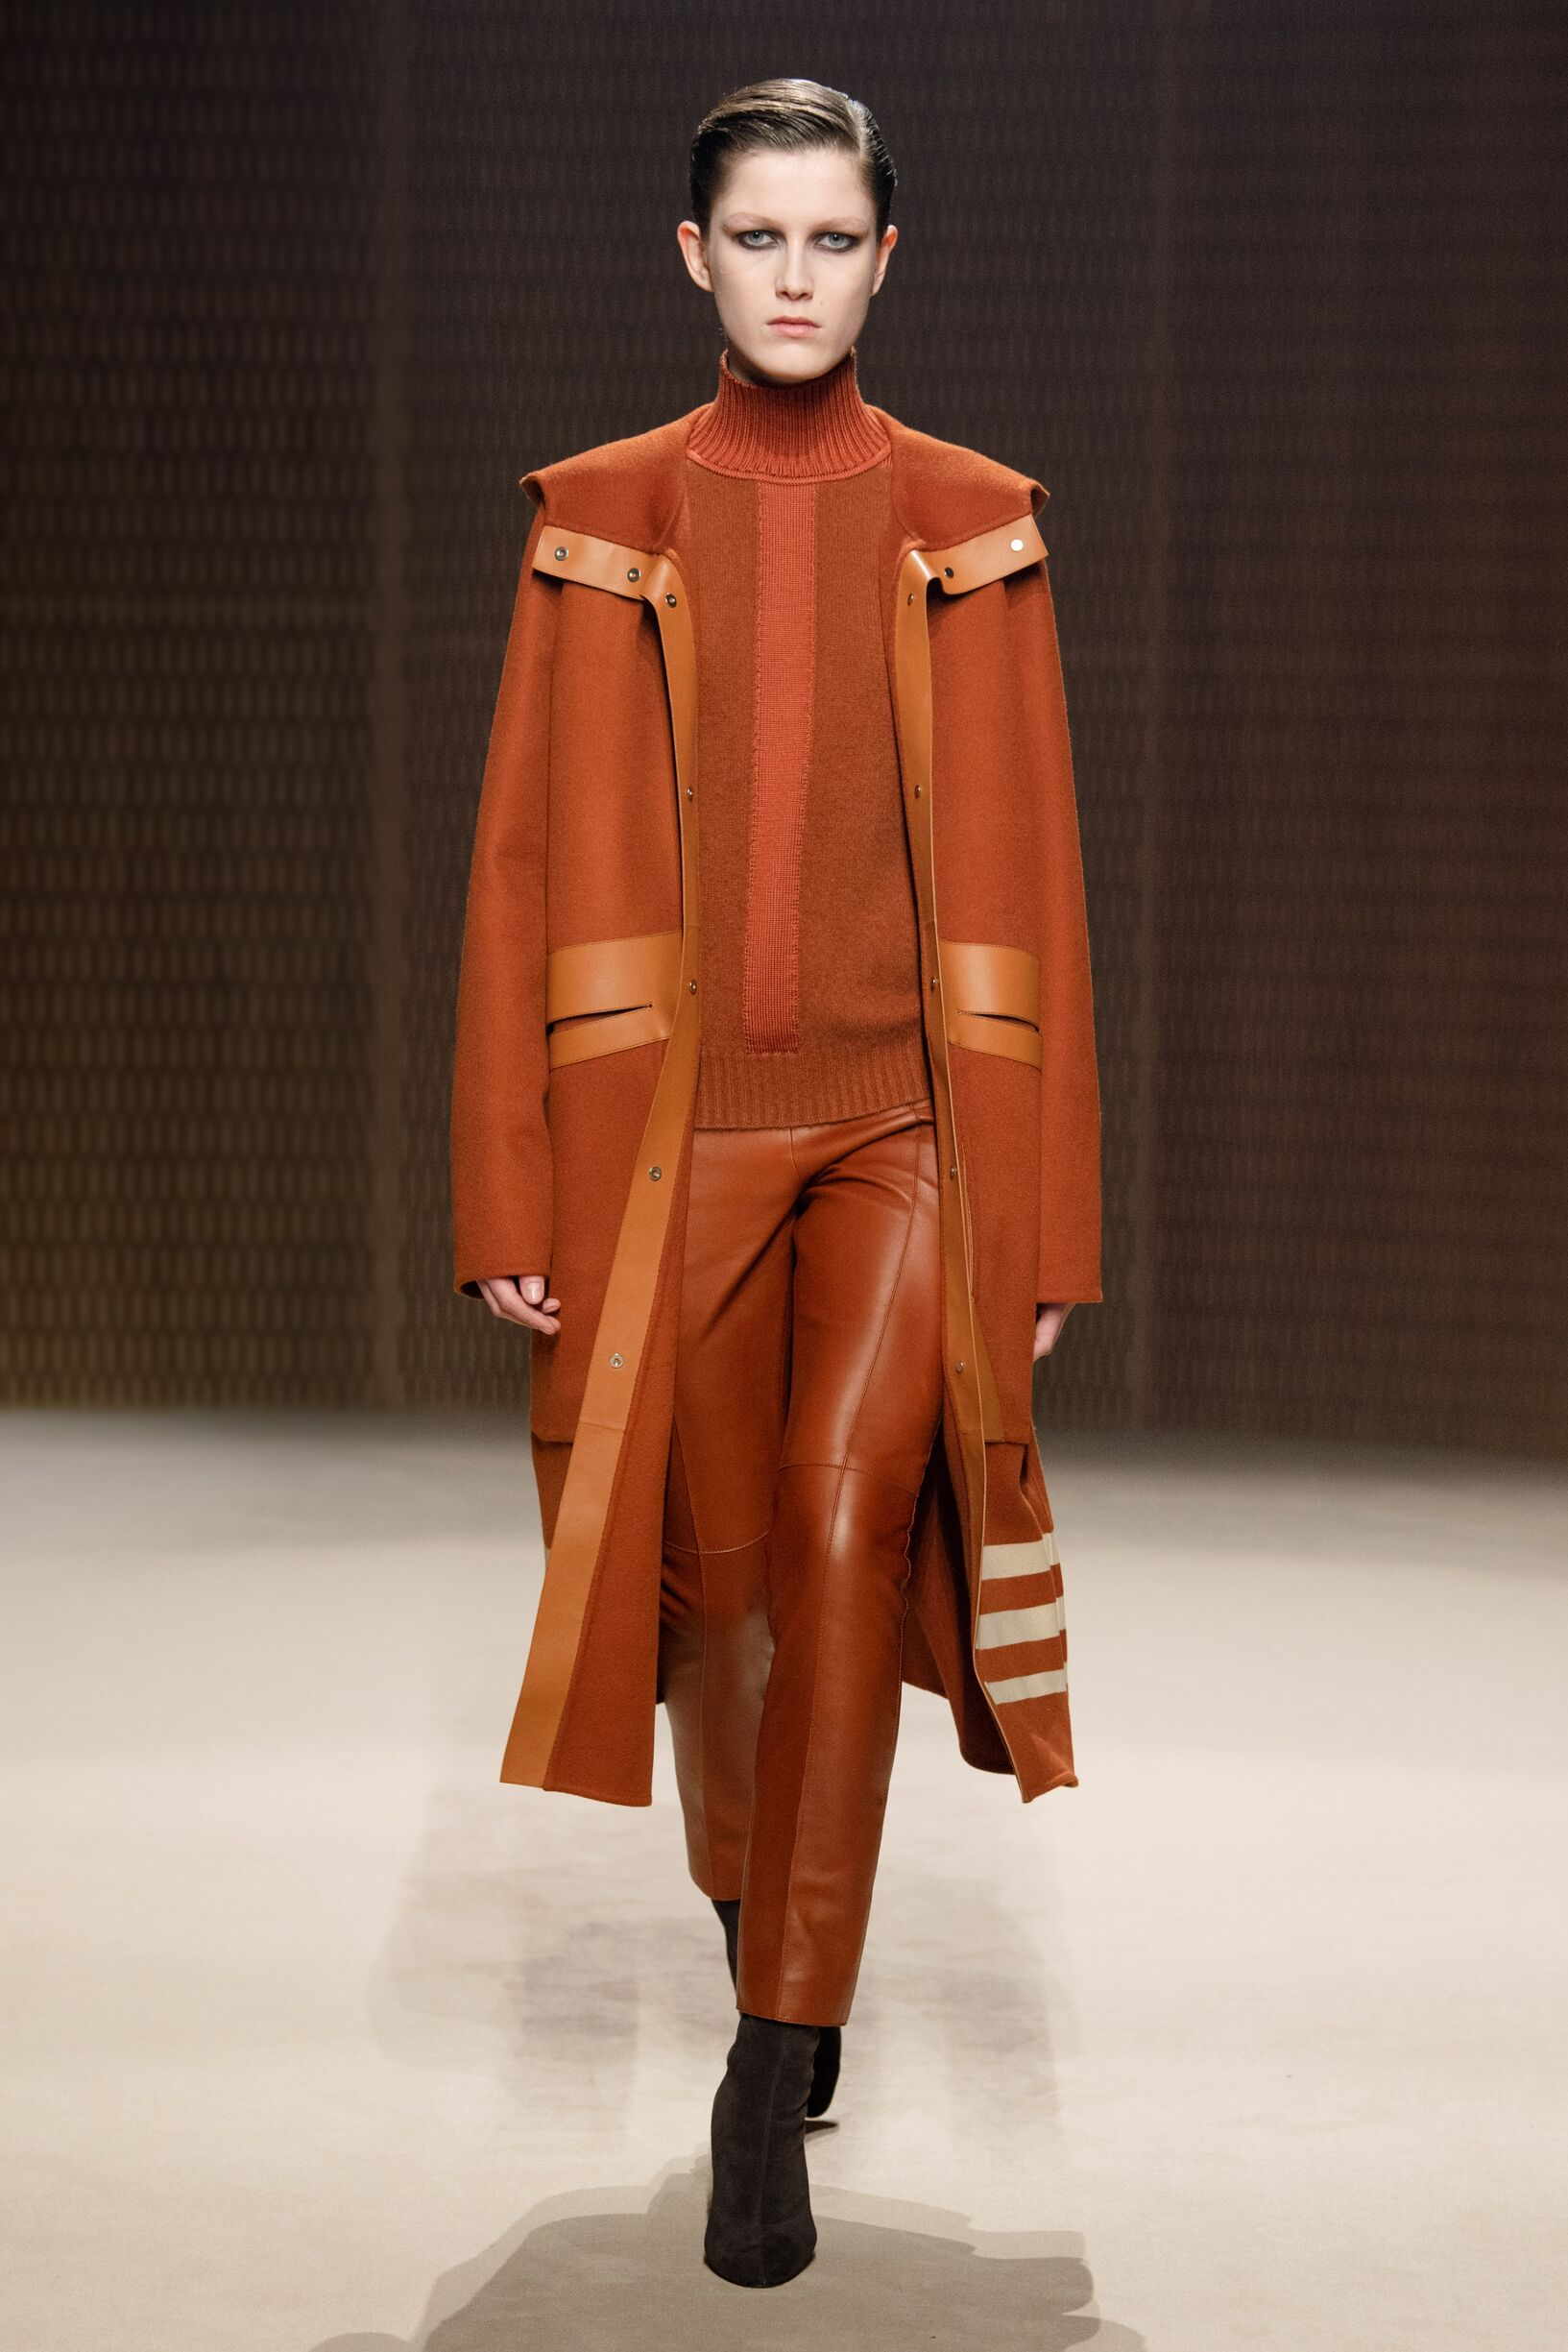 Hermès Fall Winter 2019